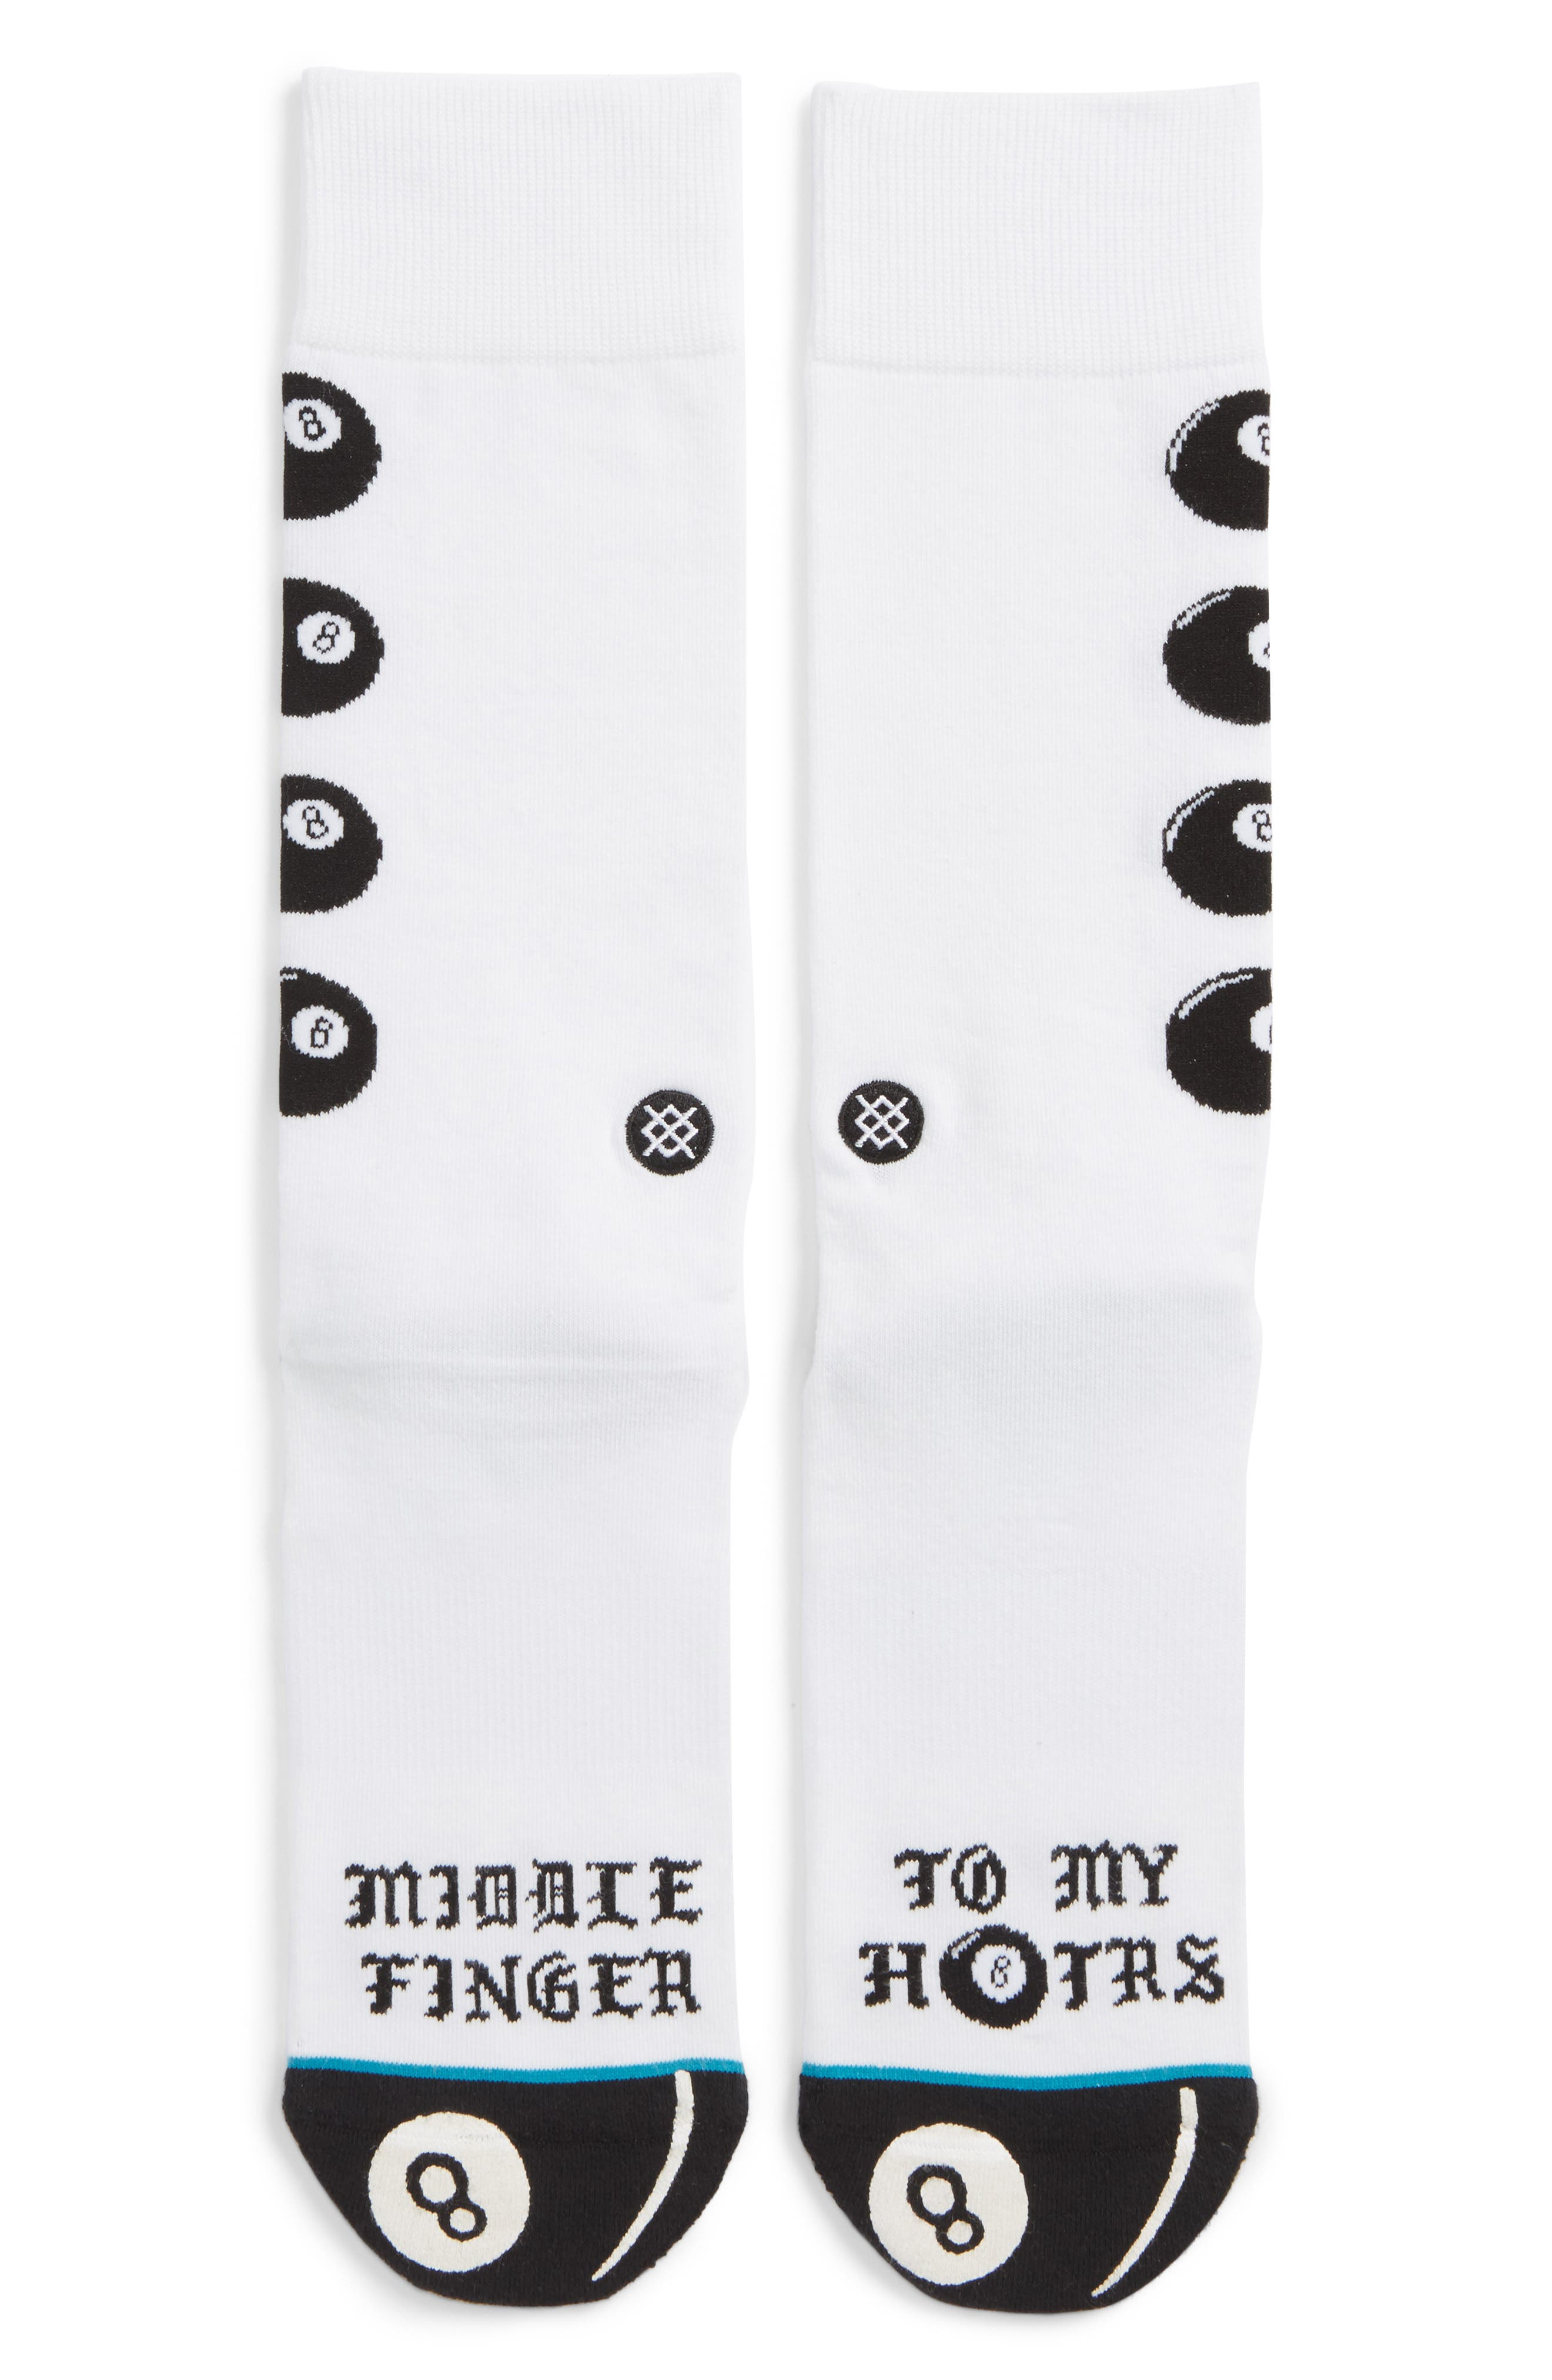 H8ters Socks,                         Main,                         color, WHITE